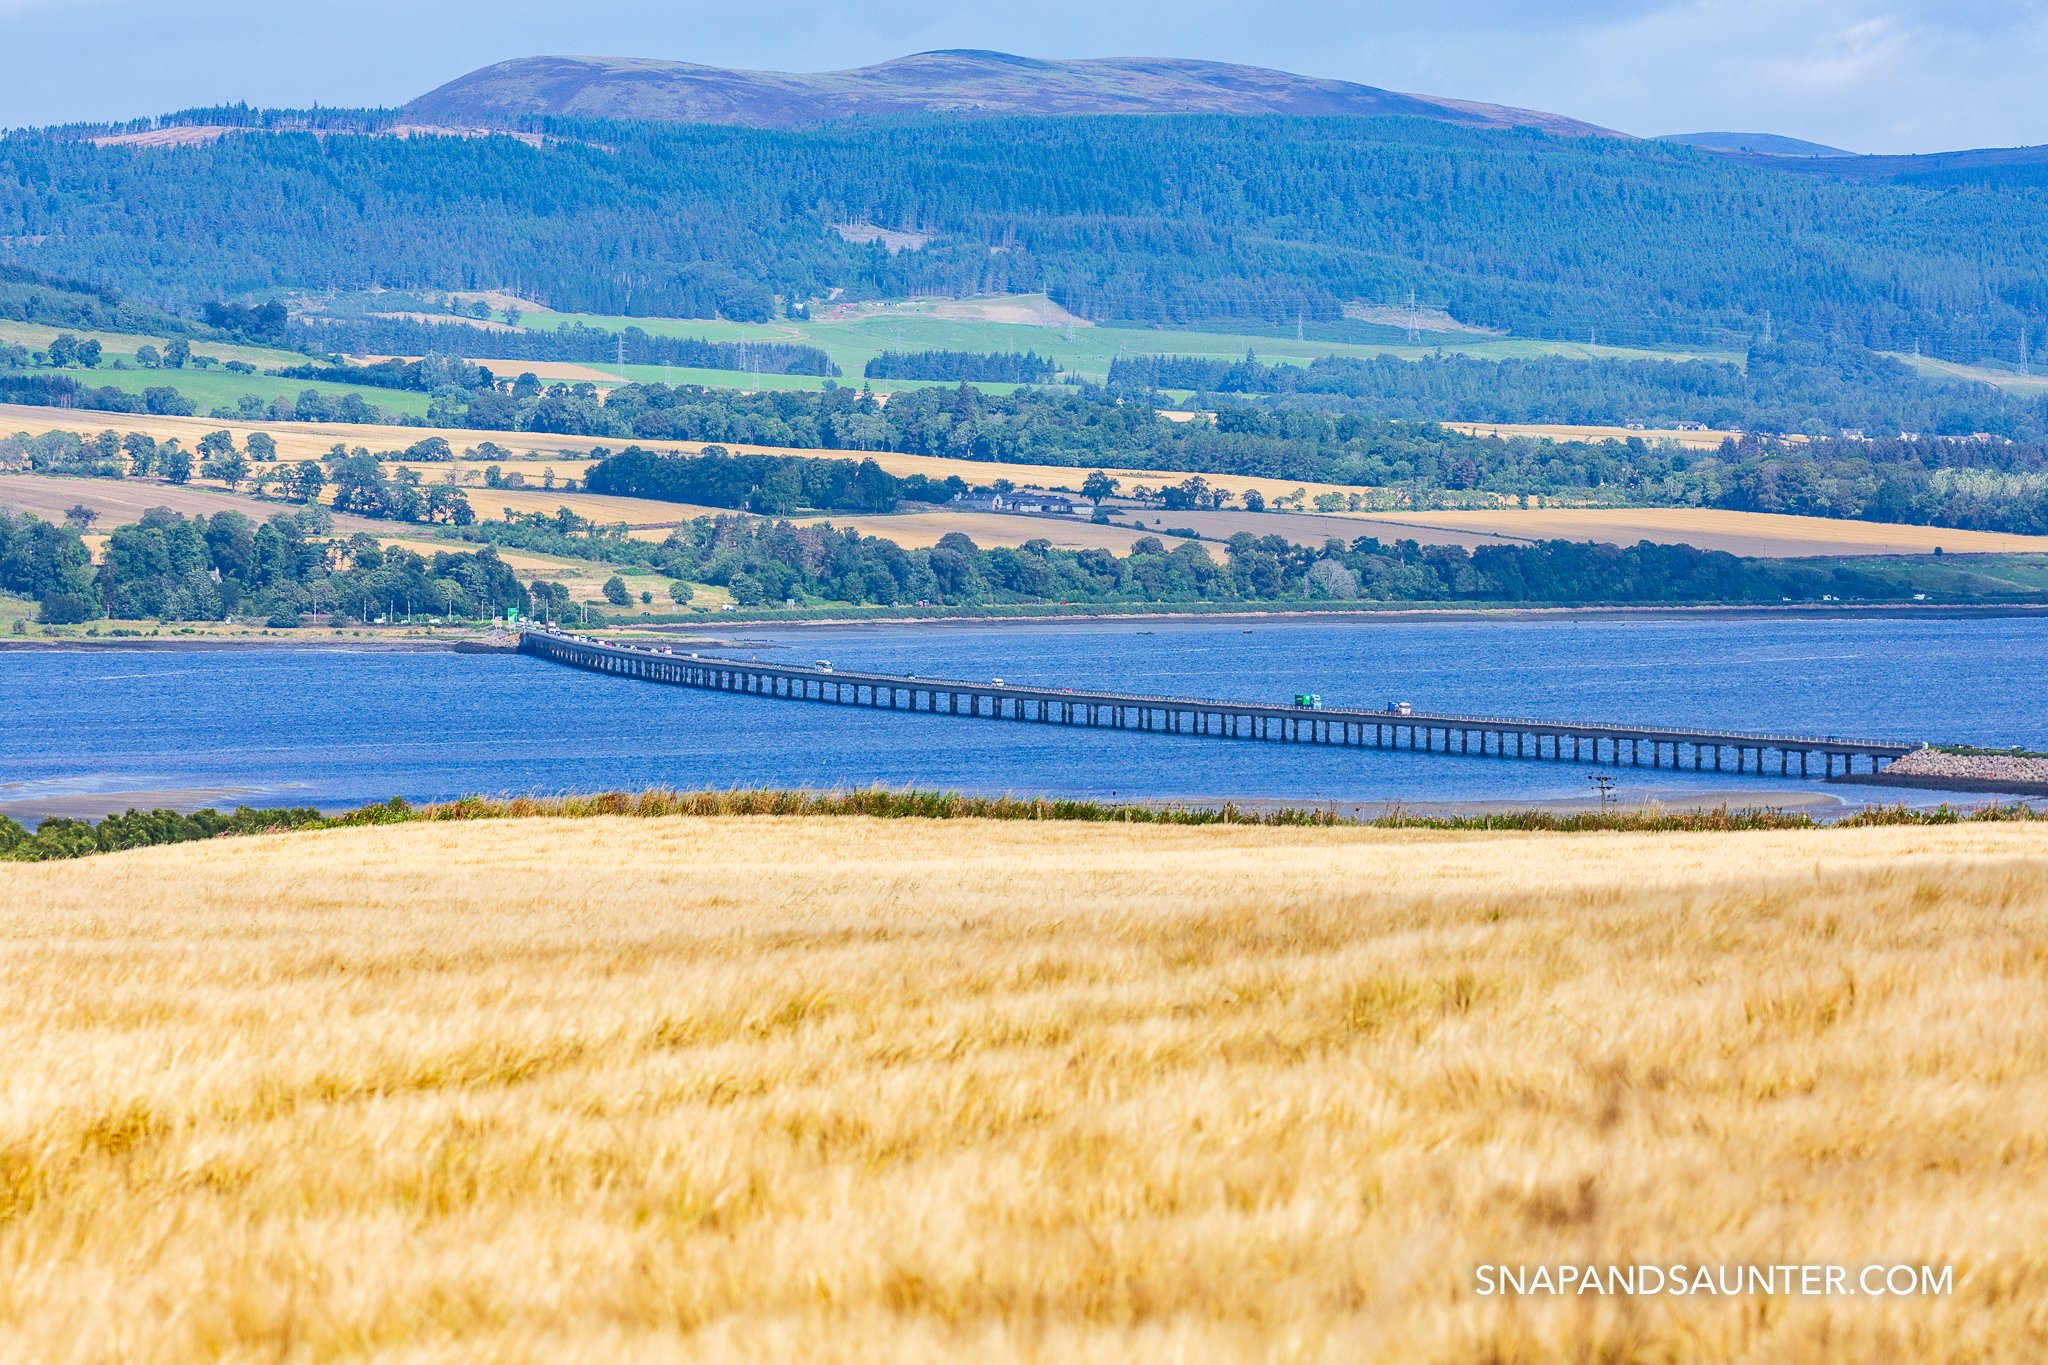 The Cromarty Bridge is a road bridge over the Cromarty Firth in Scotland.